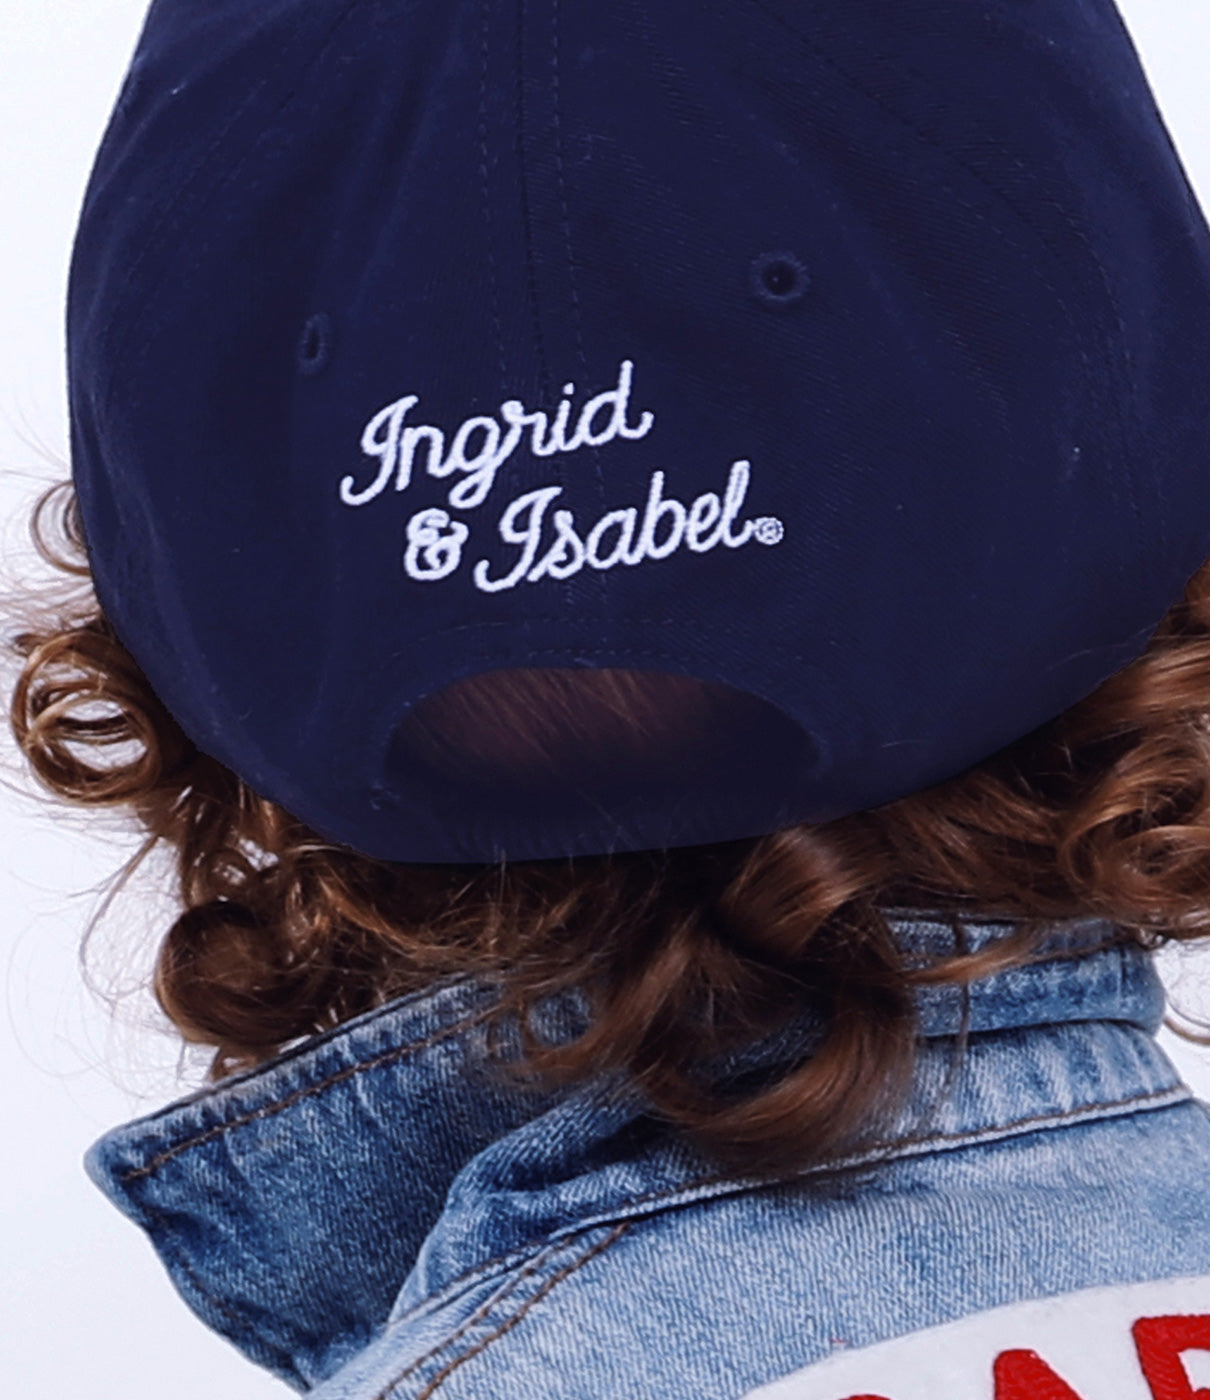 In the detailsChain Stitched Mama and Babe moniker on front of caps and chainstiched logos on back.